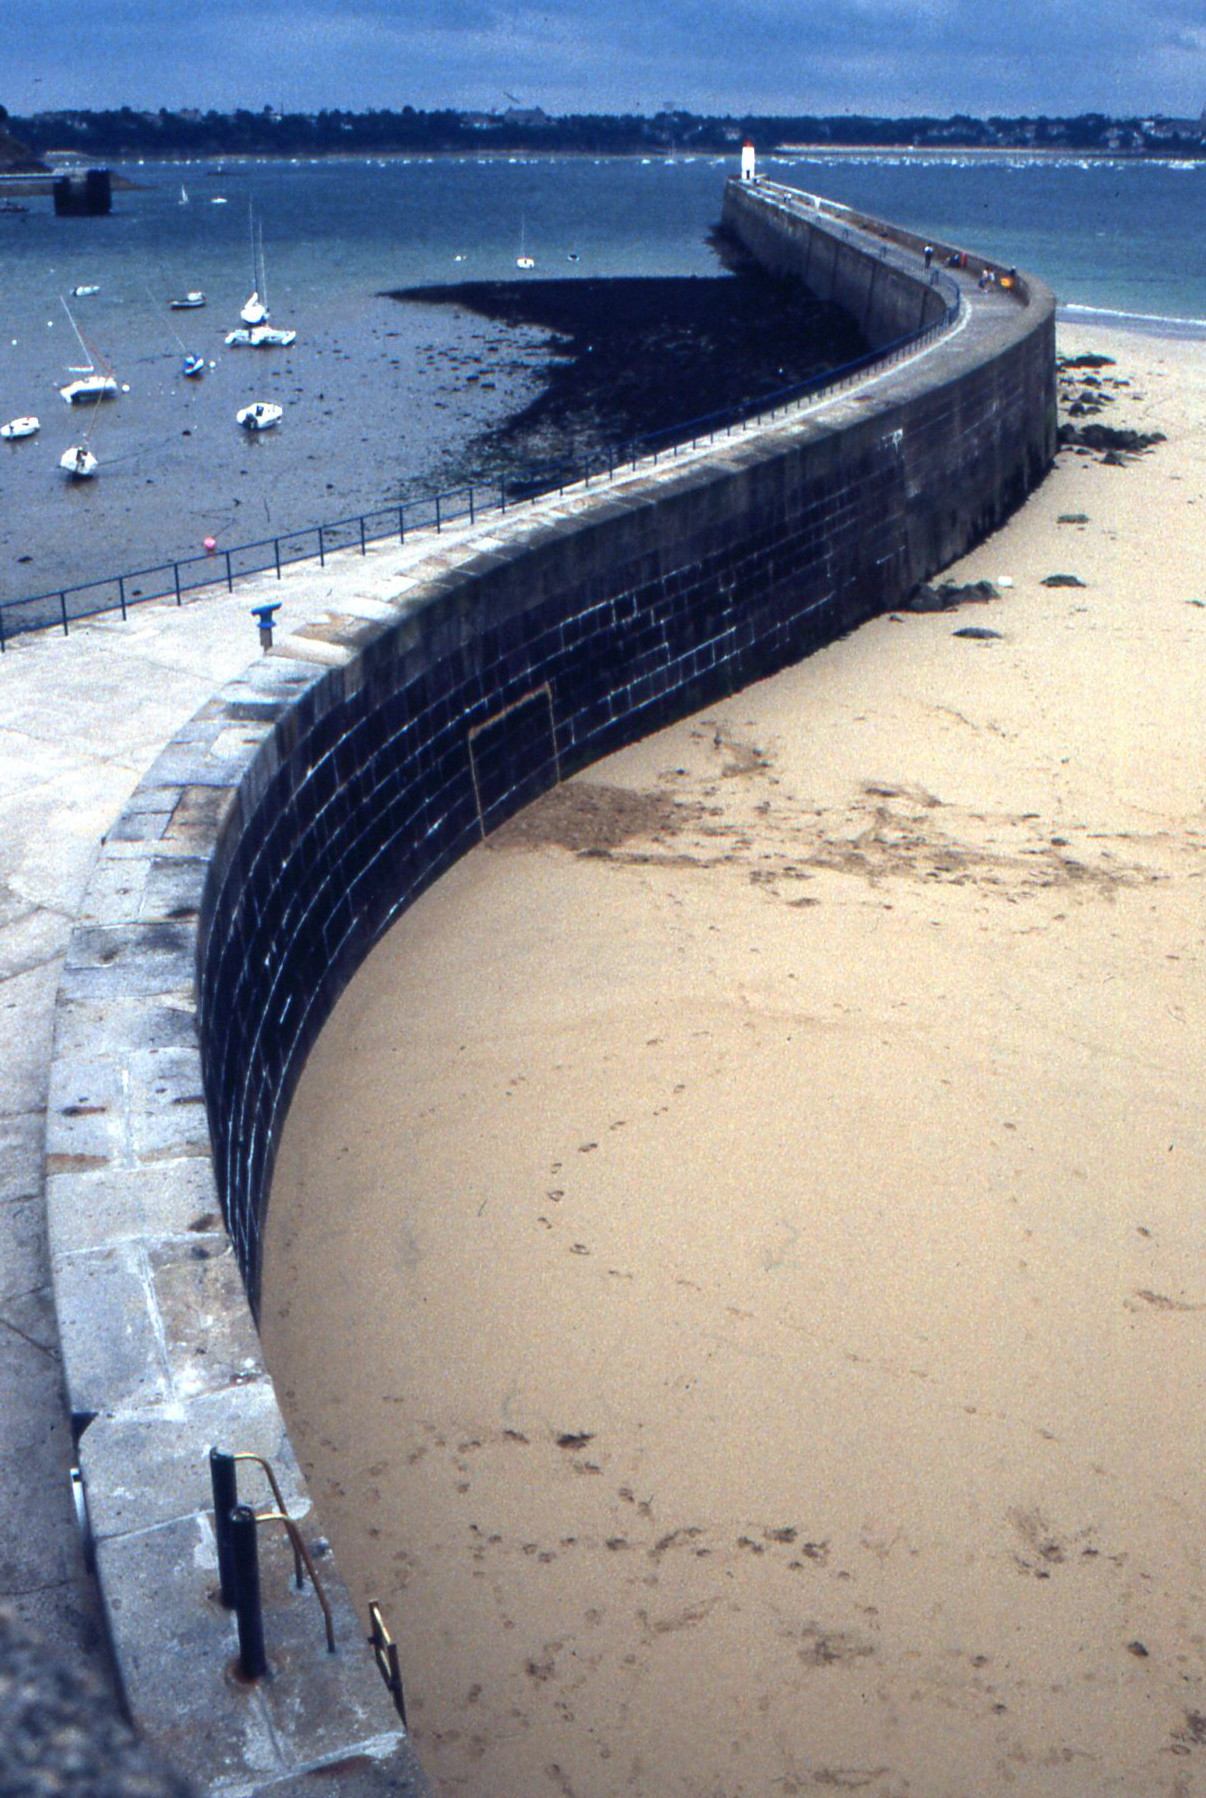 The delicate bend of St. Malo's sea wall protects swimmers from the rougher waters of the open Atlantic.